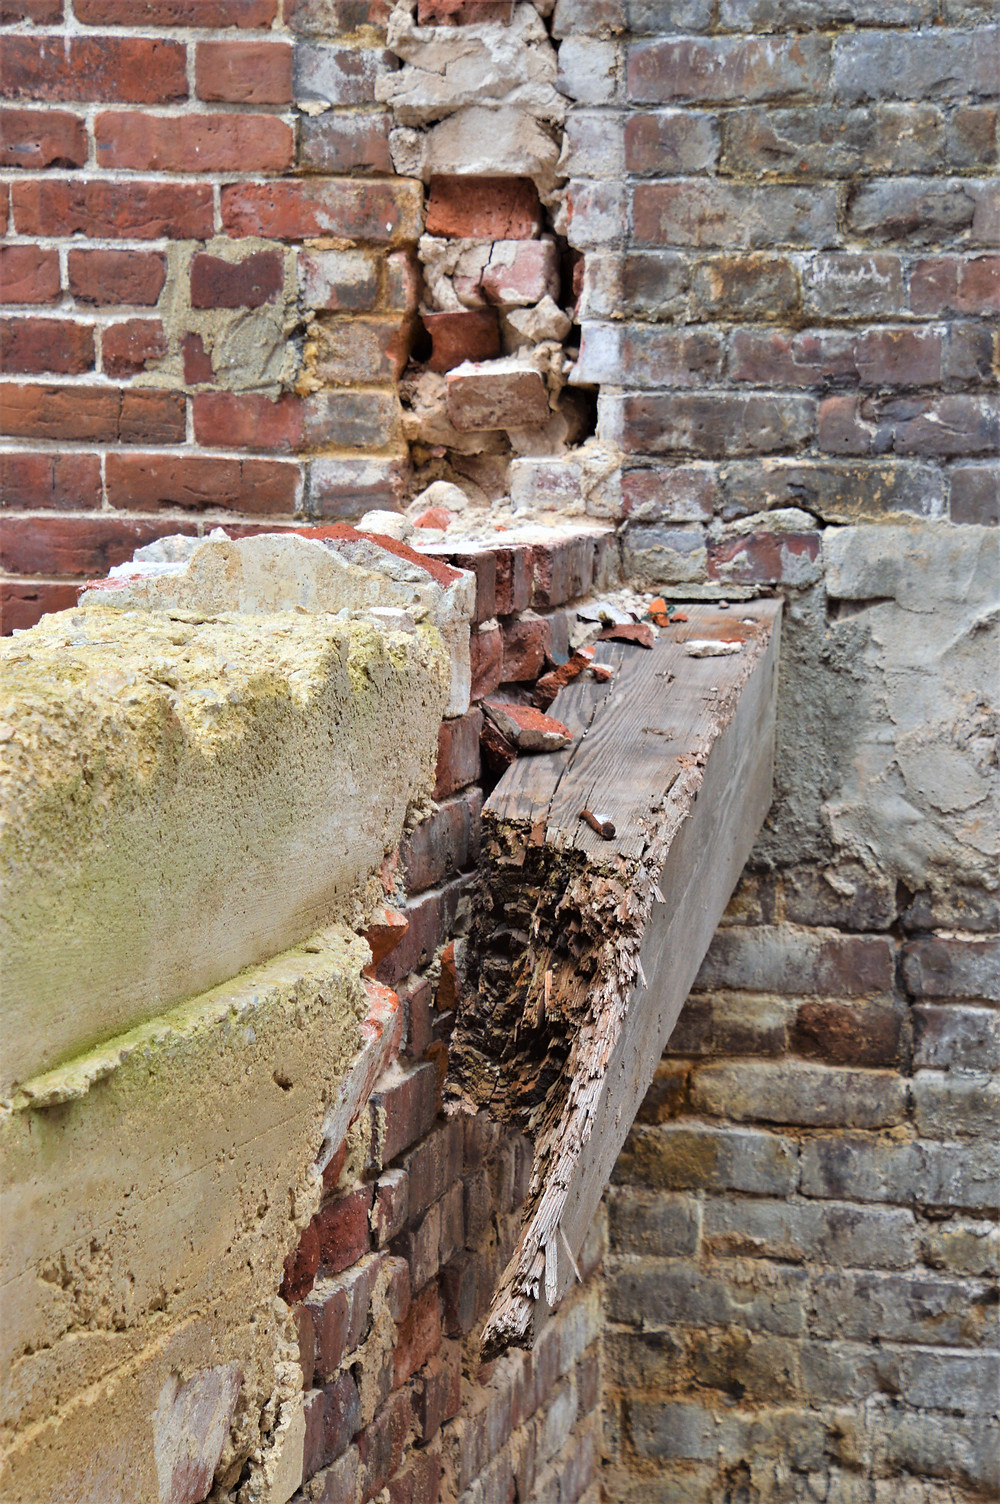 Broken wood support and cracked brick at the Nashua Manufacturing Co mill complex